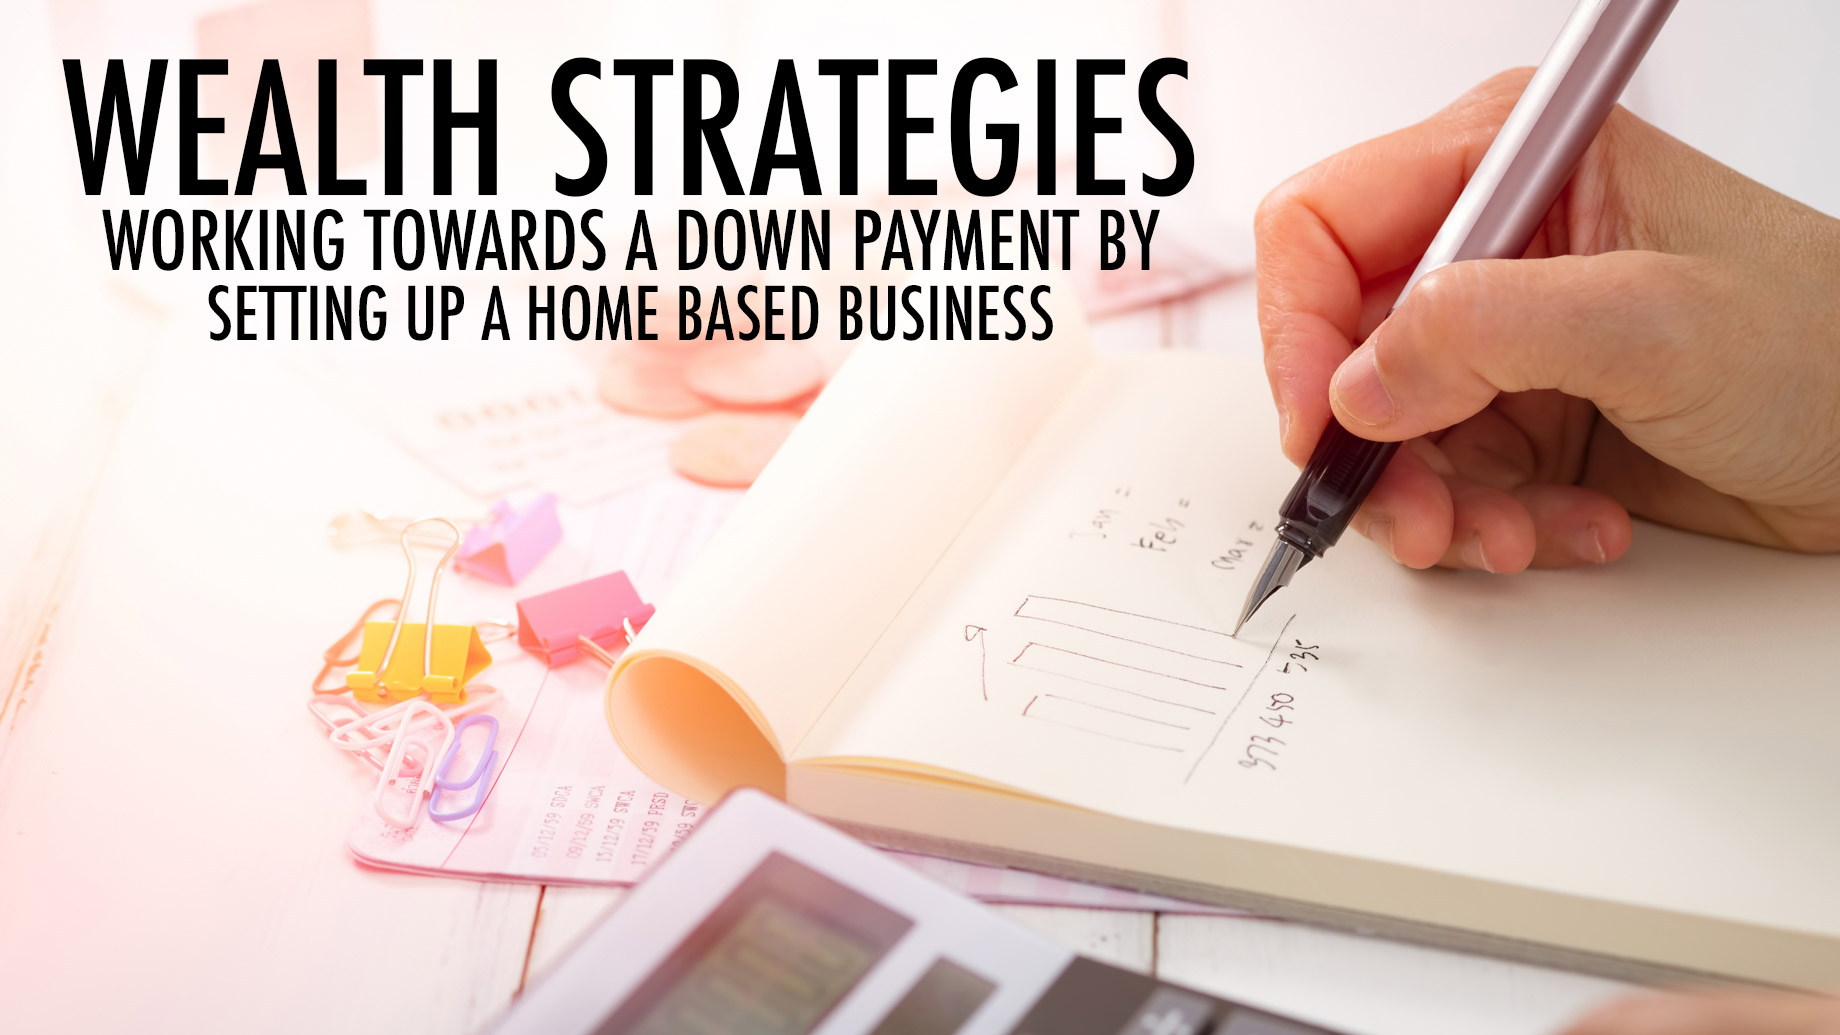 Wealth Strategies - Working Towards a Down Payment by Setting Up a Home-Based Business